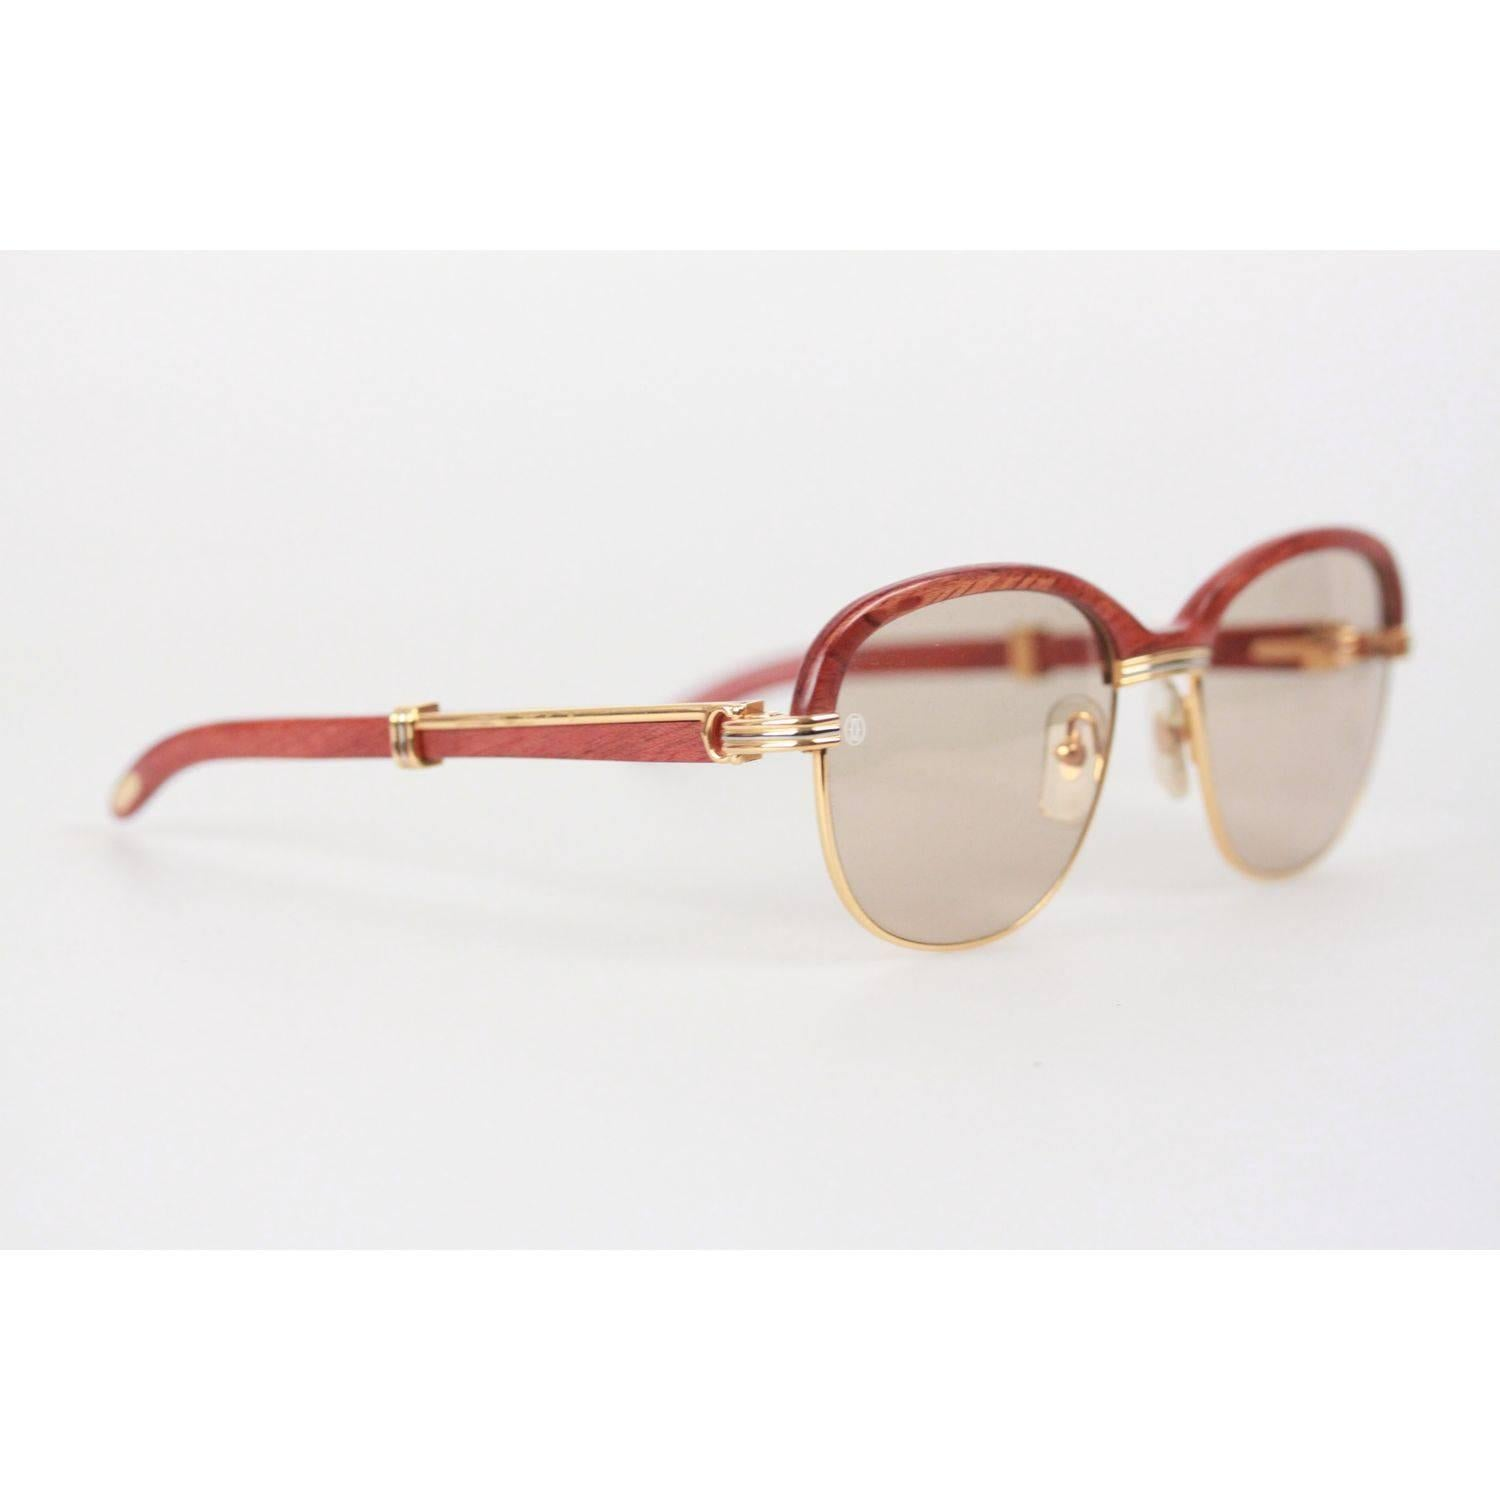 7f3f5e41fbc2 Cartier paris malmaison palisander rosewood rare gold sunglasses nos for  sale at stdibs JPG 1500x1500 Cartier